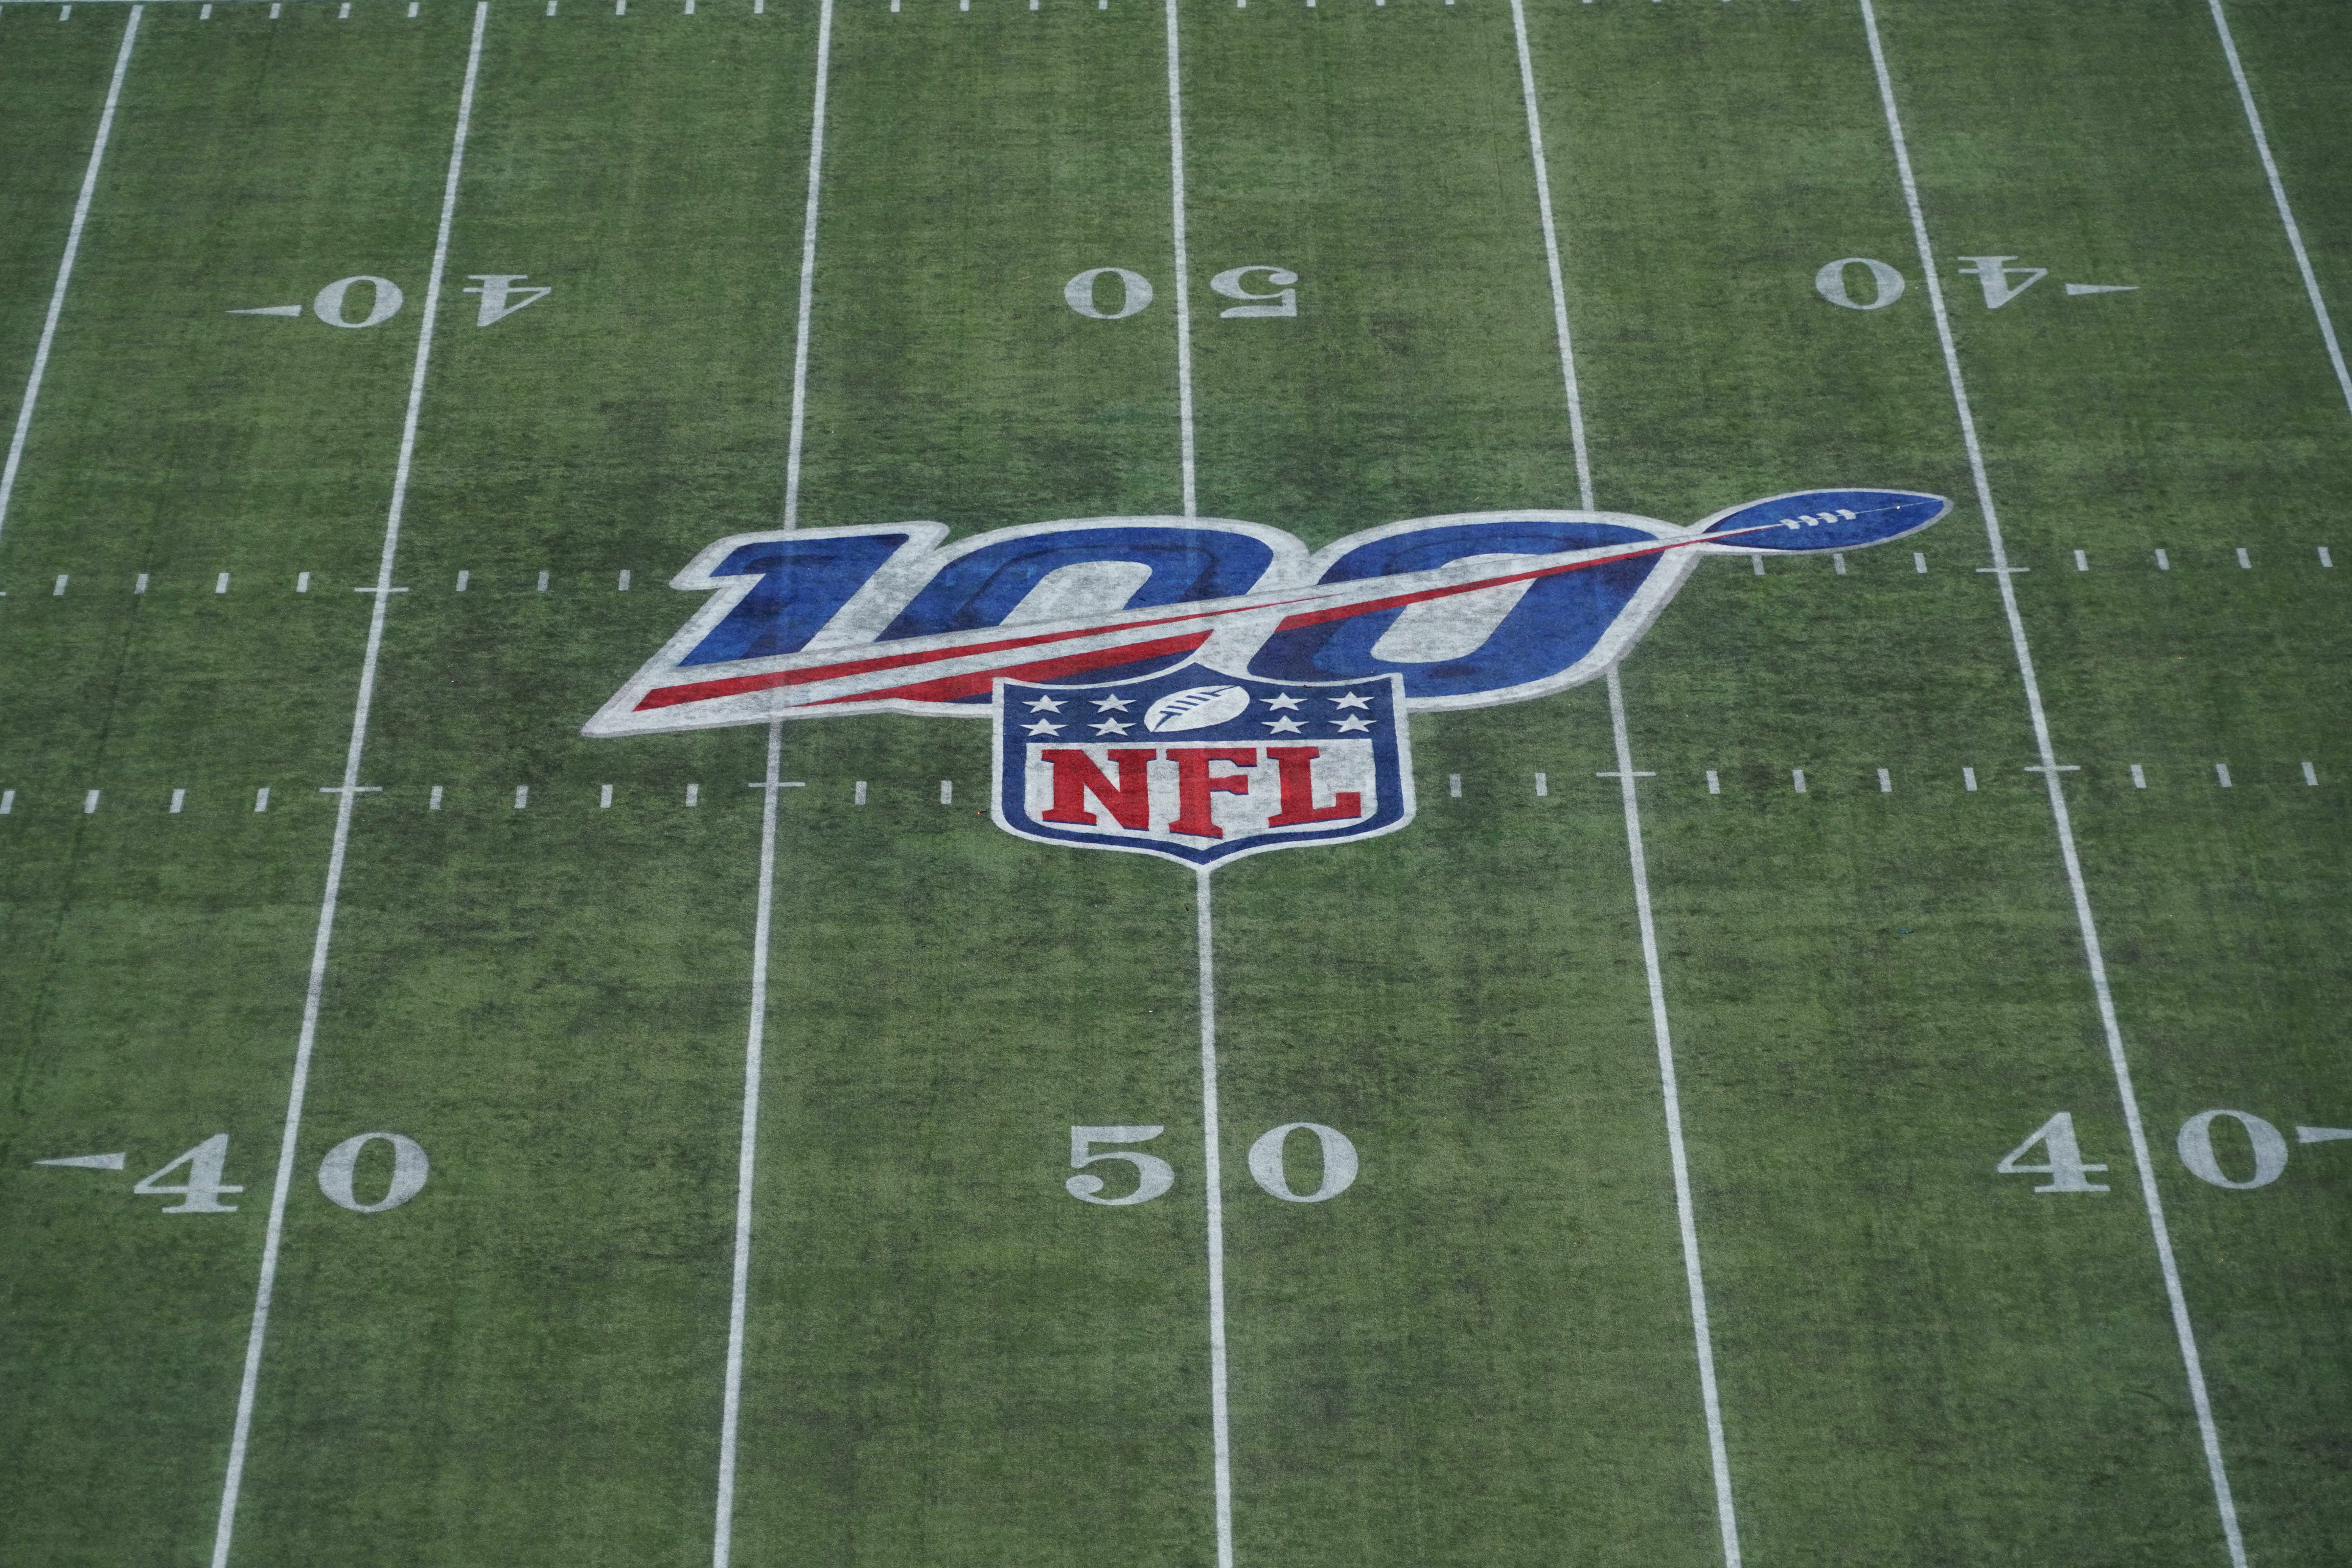 NFL player reps vote to send proposed collective bargaining agreement to full union membership for approval